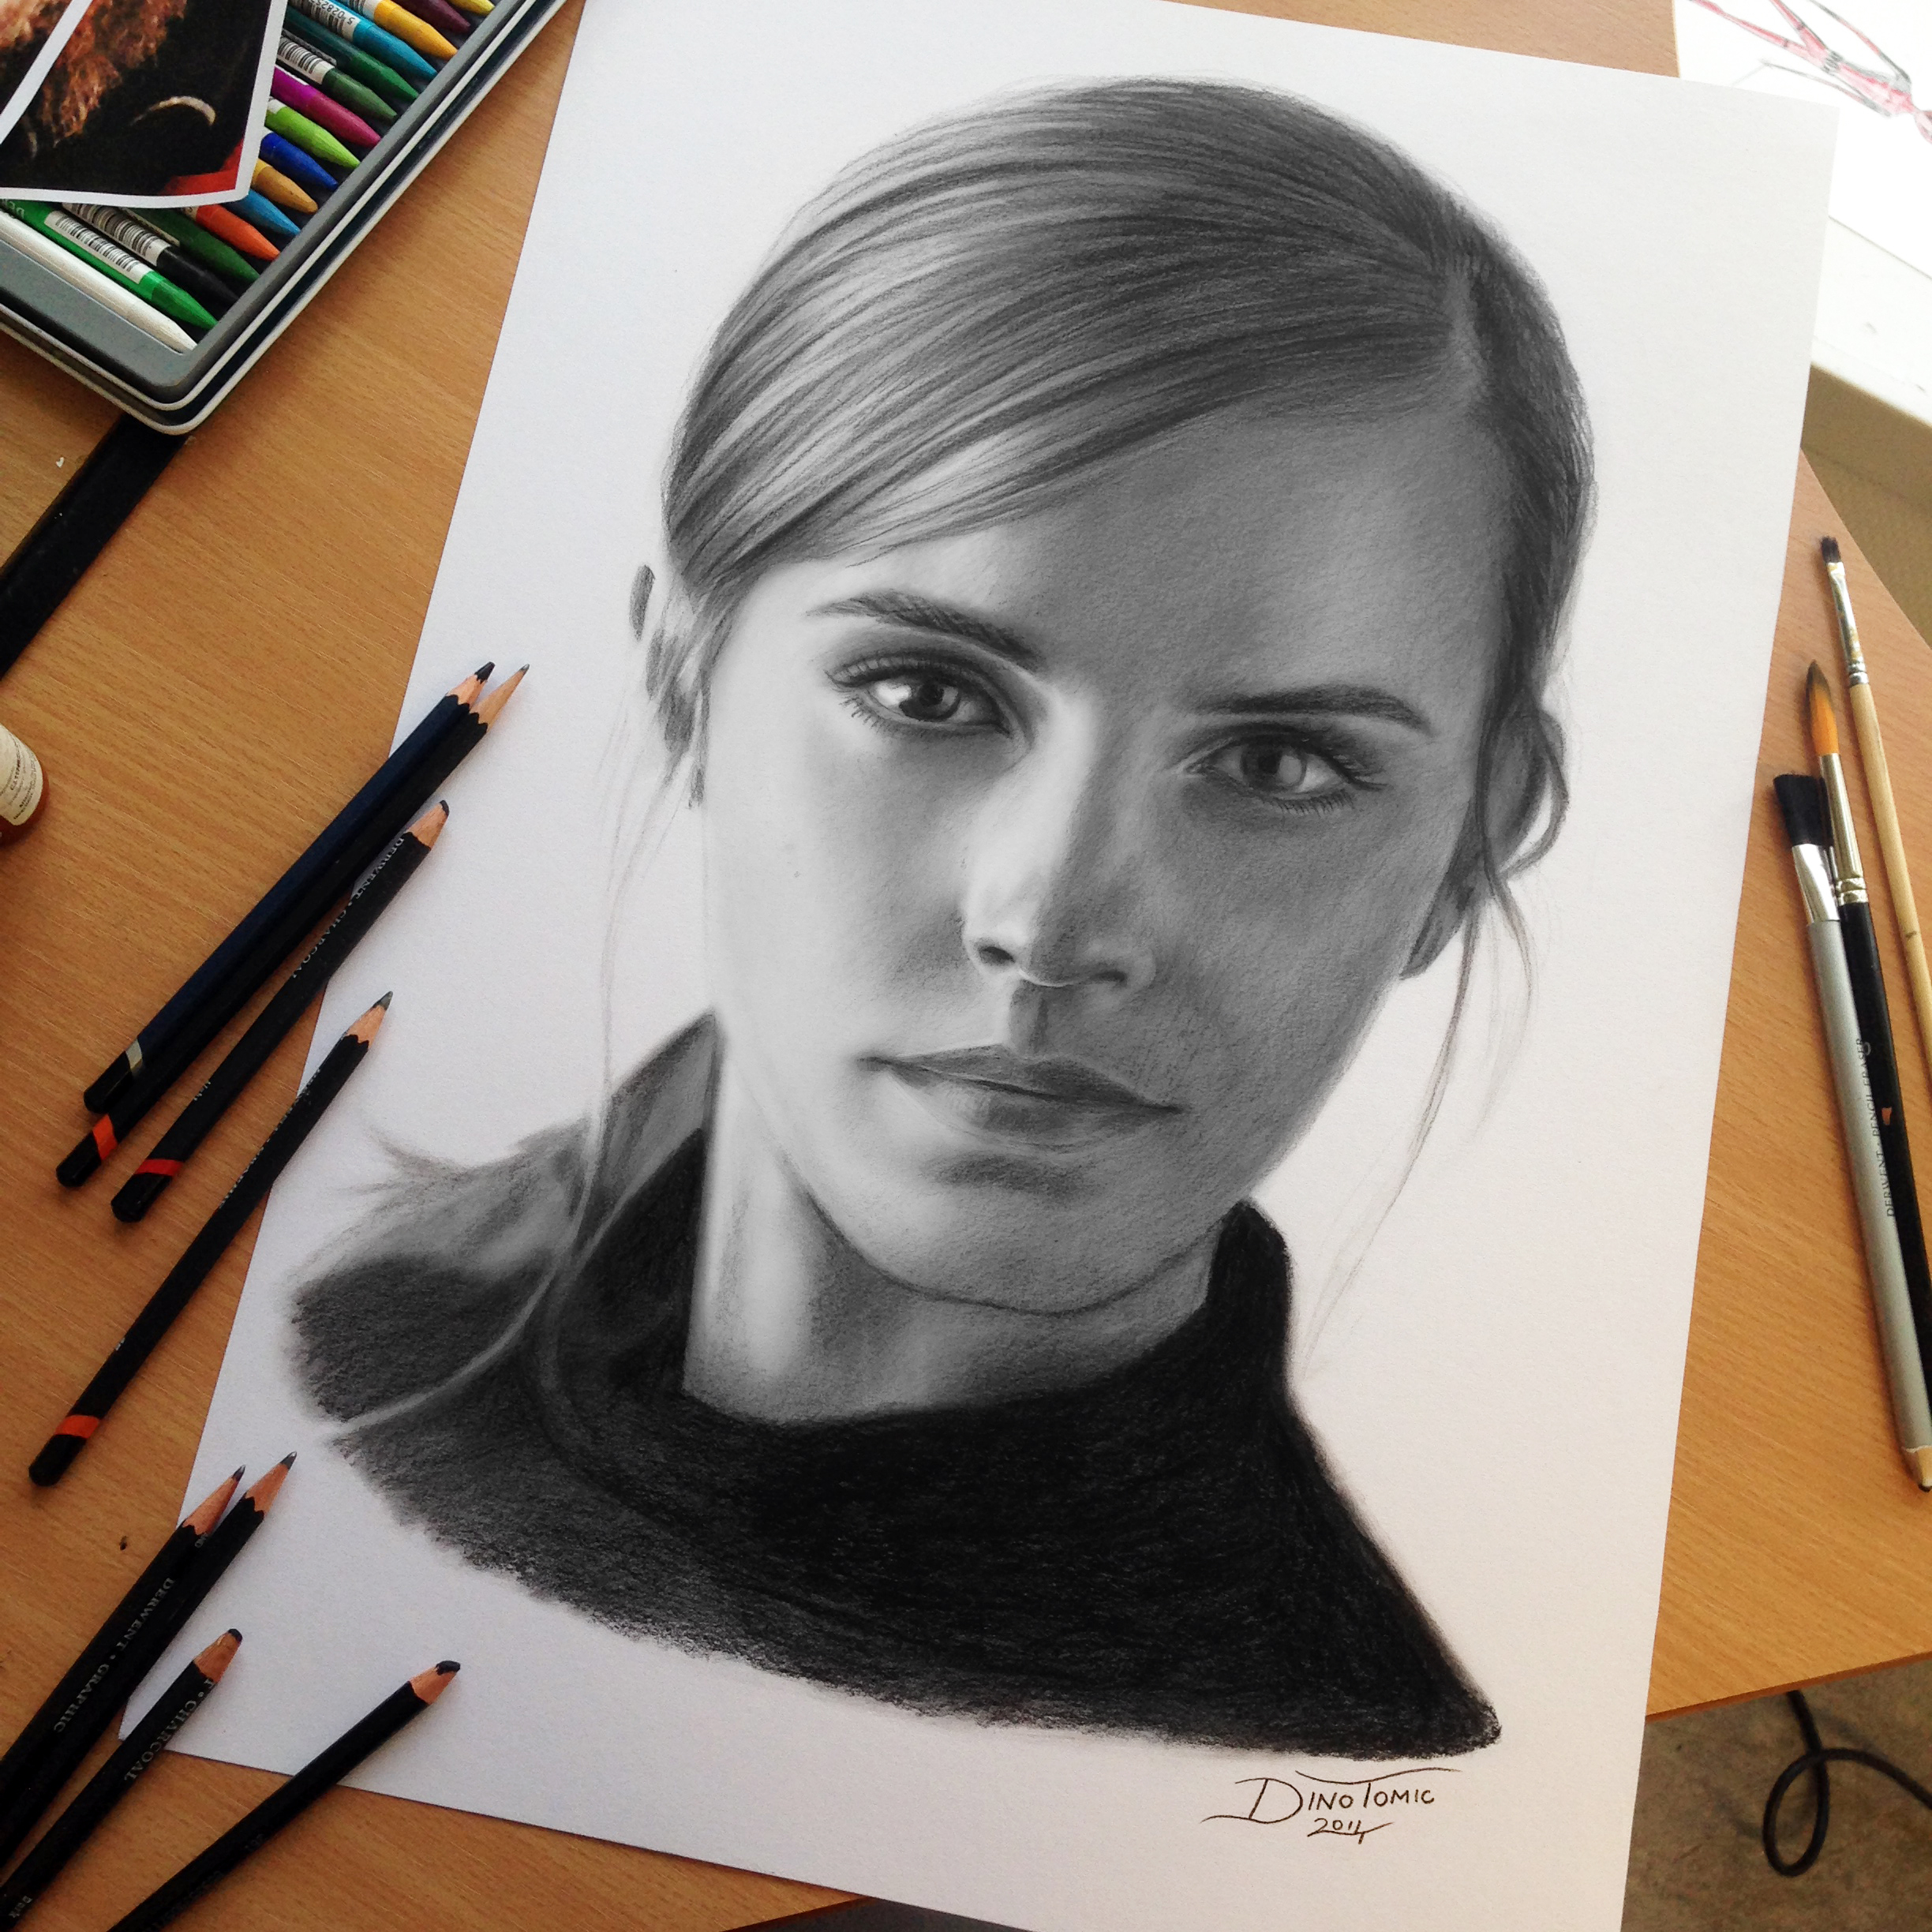 emma_by_atomiccircus-d7ve3t1